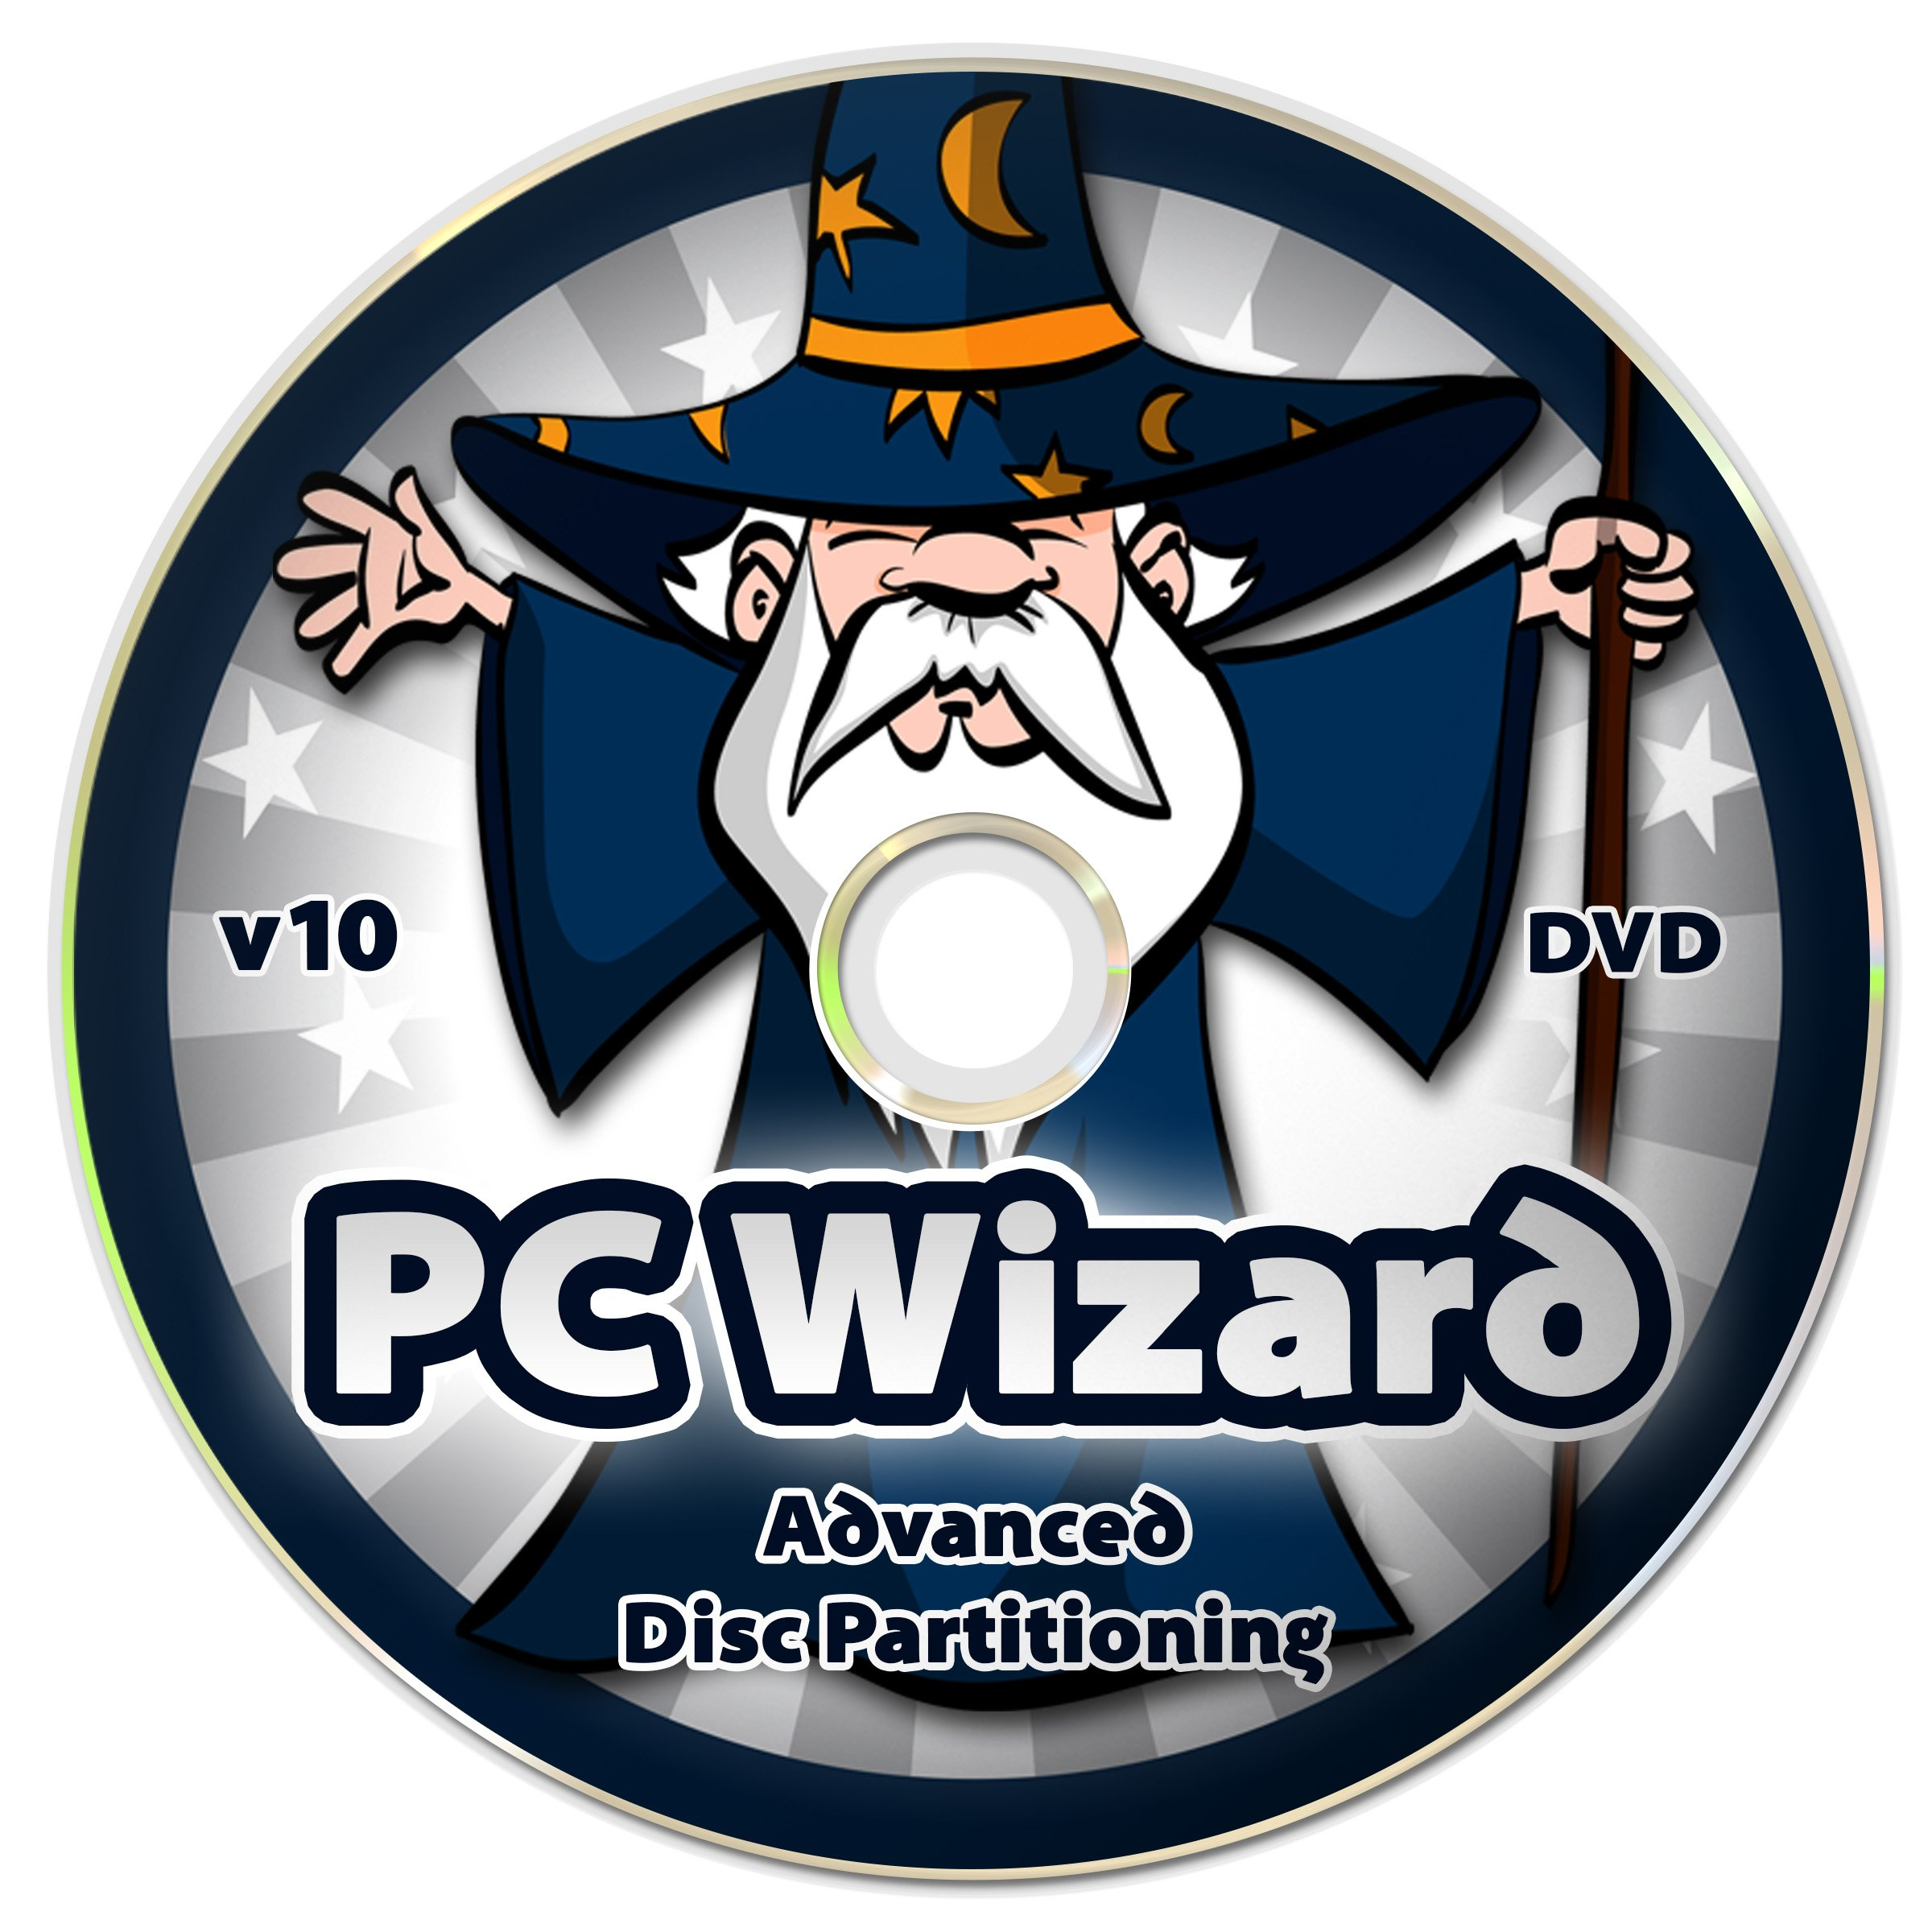 PC Wizard - Easily Partition, Format, Clone or Backup any Size Internal or External Hard Drive Disc by PC Wizard